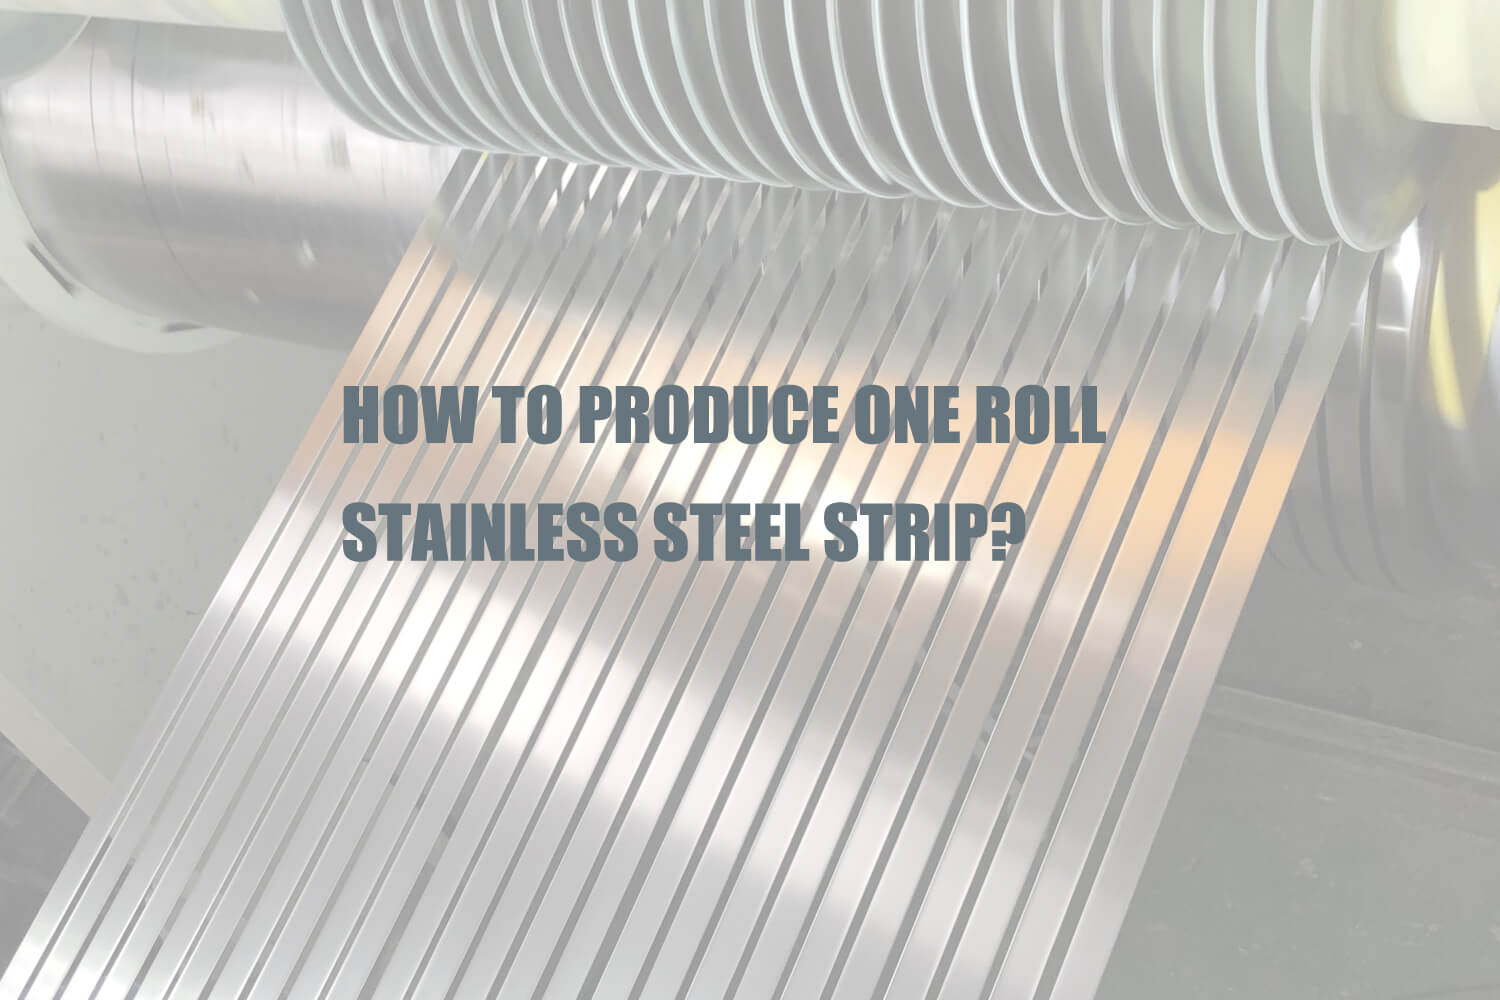 1-roll-stainless-steel-strip-production-process